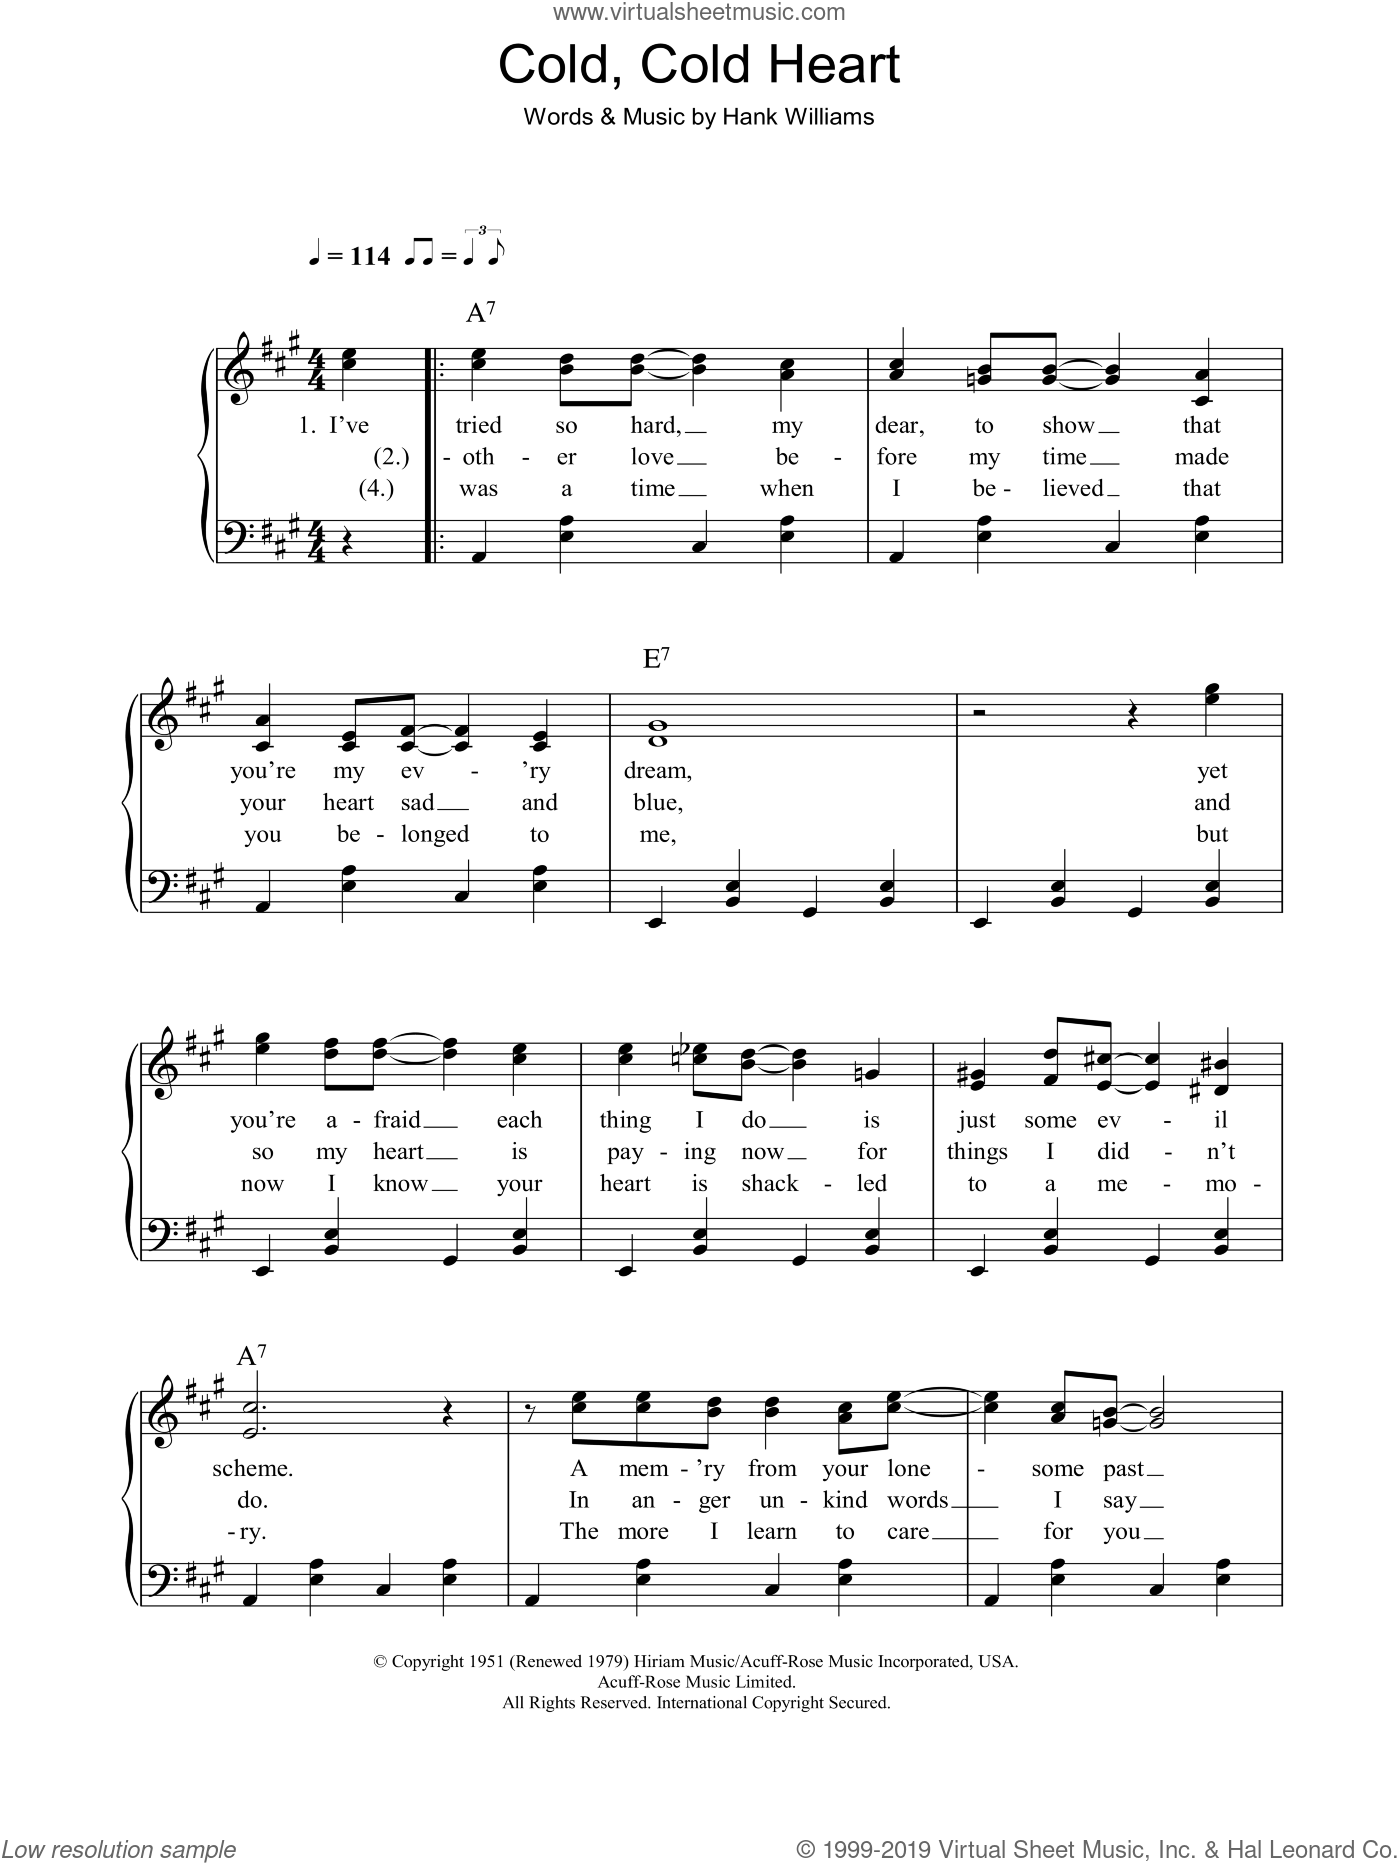 Cold, Cold Heart, (easy) sheet music for piano solo by Norah Jones and Hank Williams, easy skill level